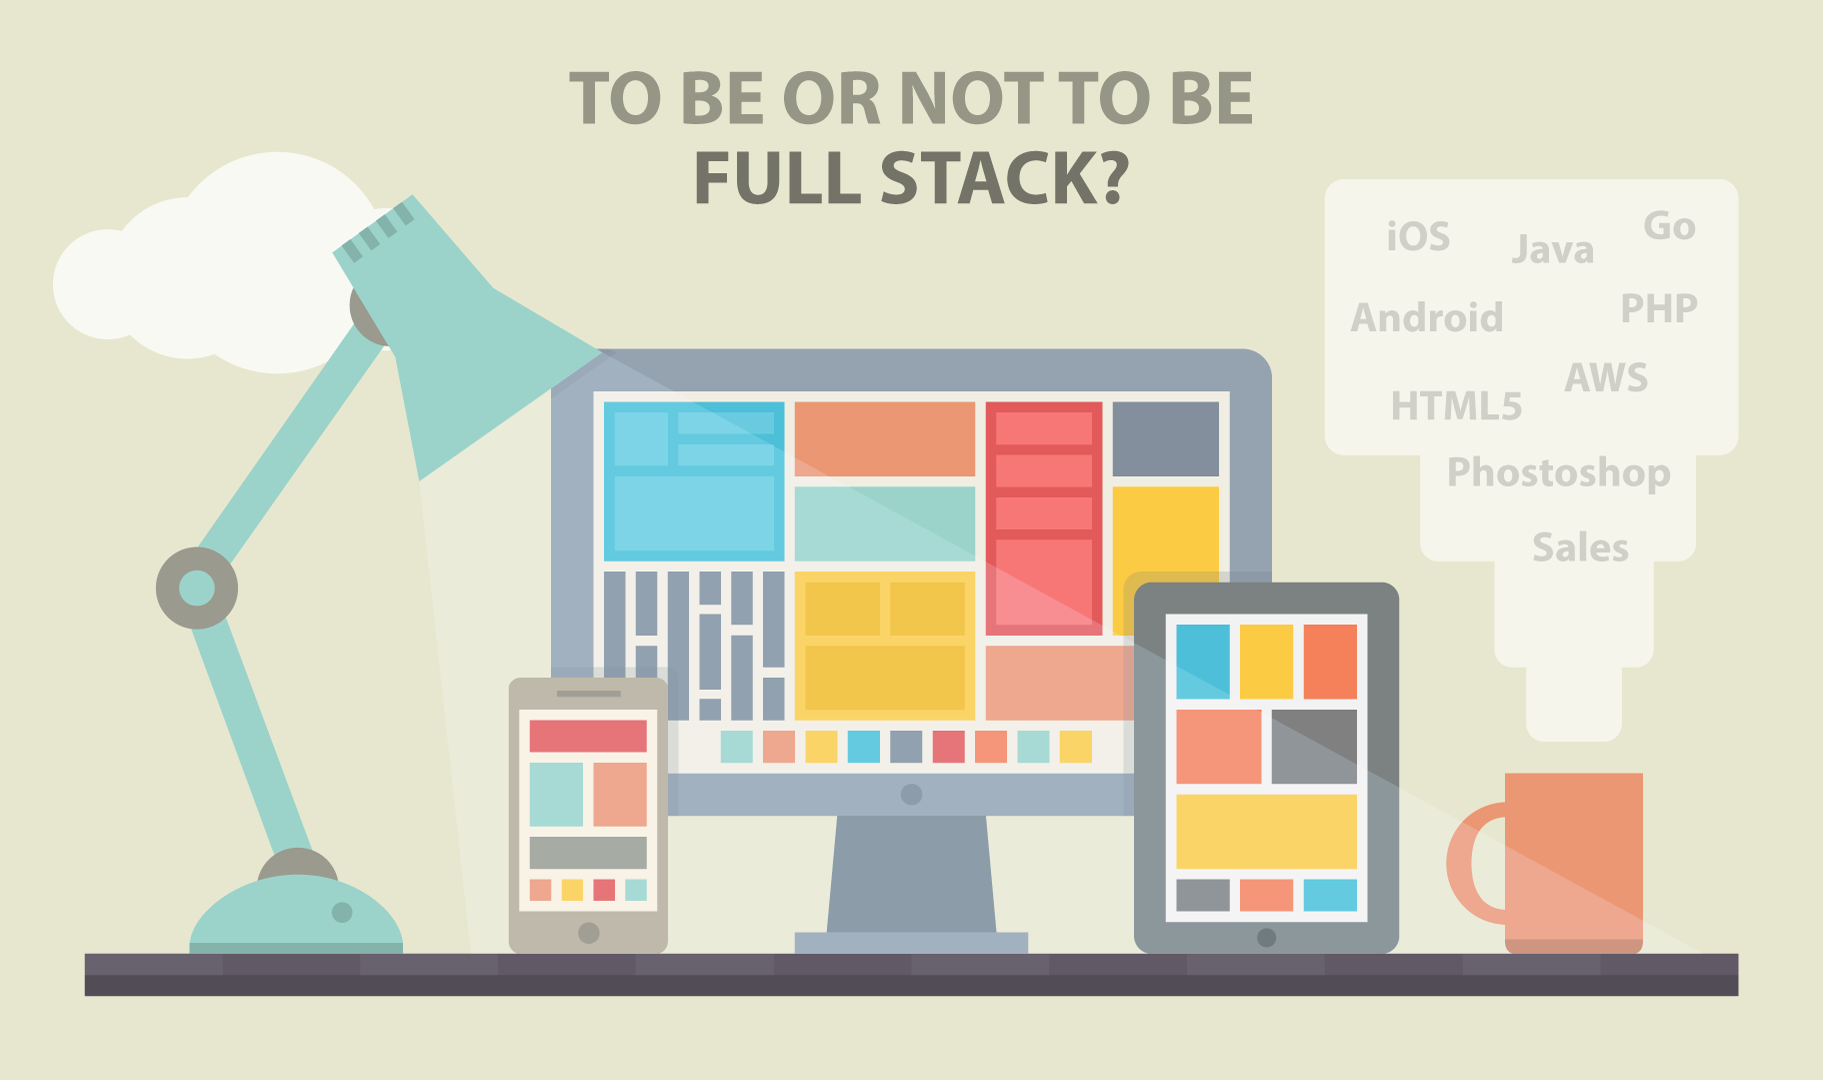 To Be or Not to Be Full Stack